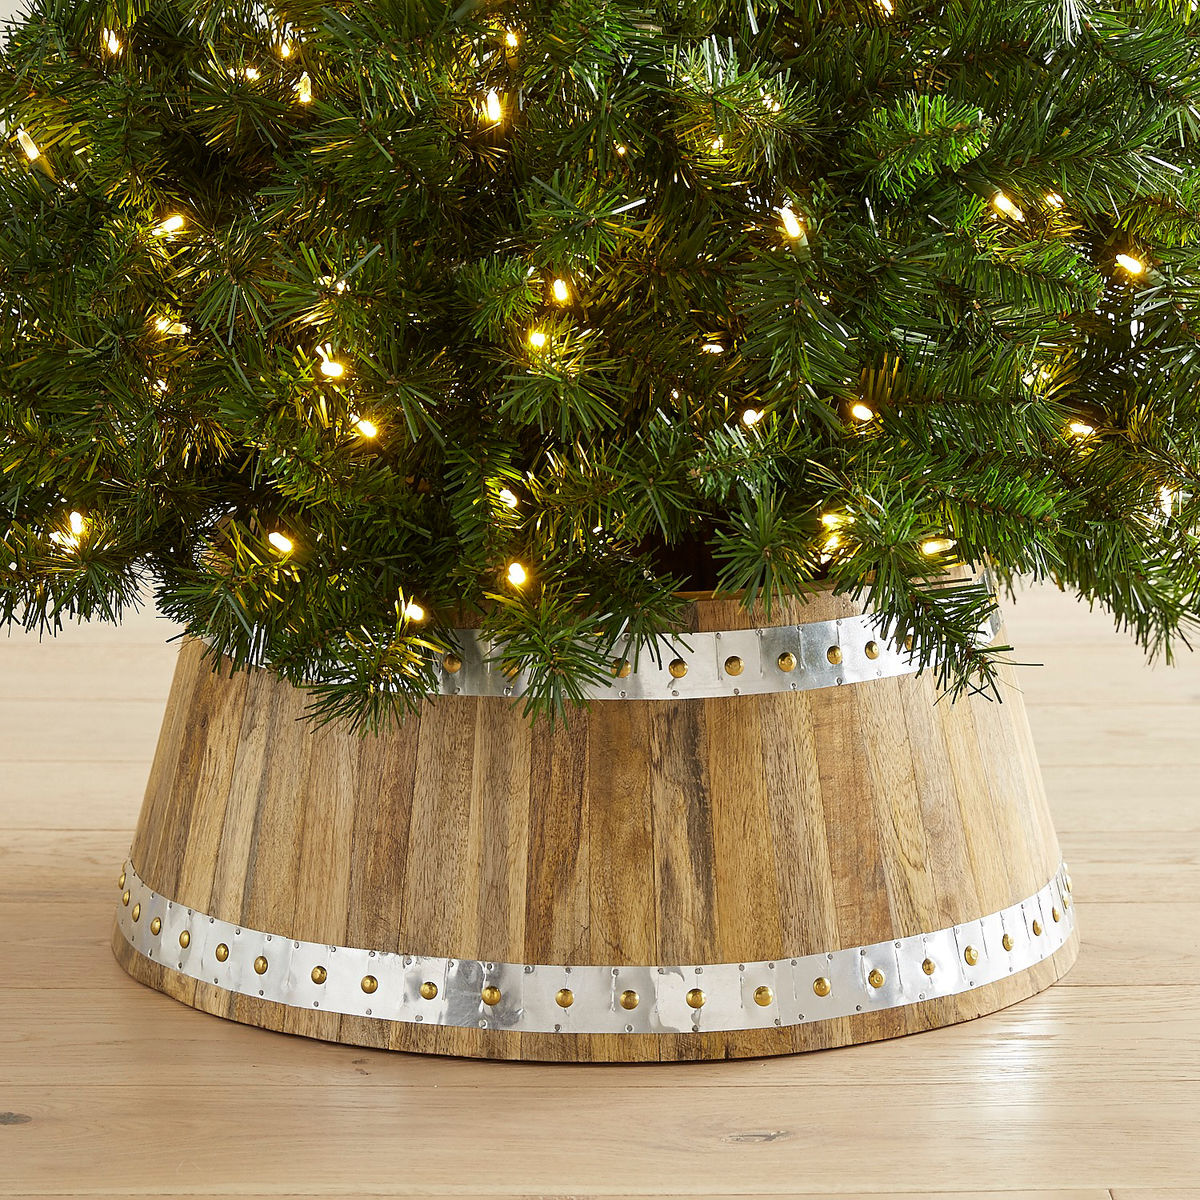 Magnificent Wood Tree Collar Tree Collars Salty Blonde Tree Collar Canada Tree Collar Home Depot houzz 01 Christmas Tree Collar